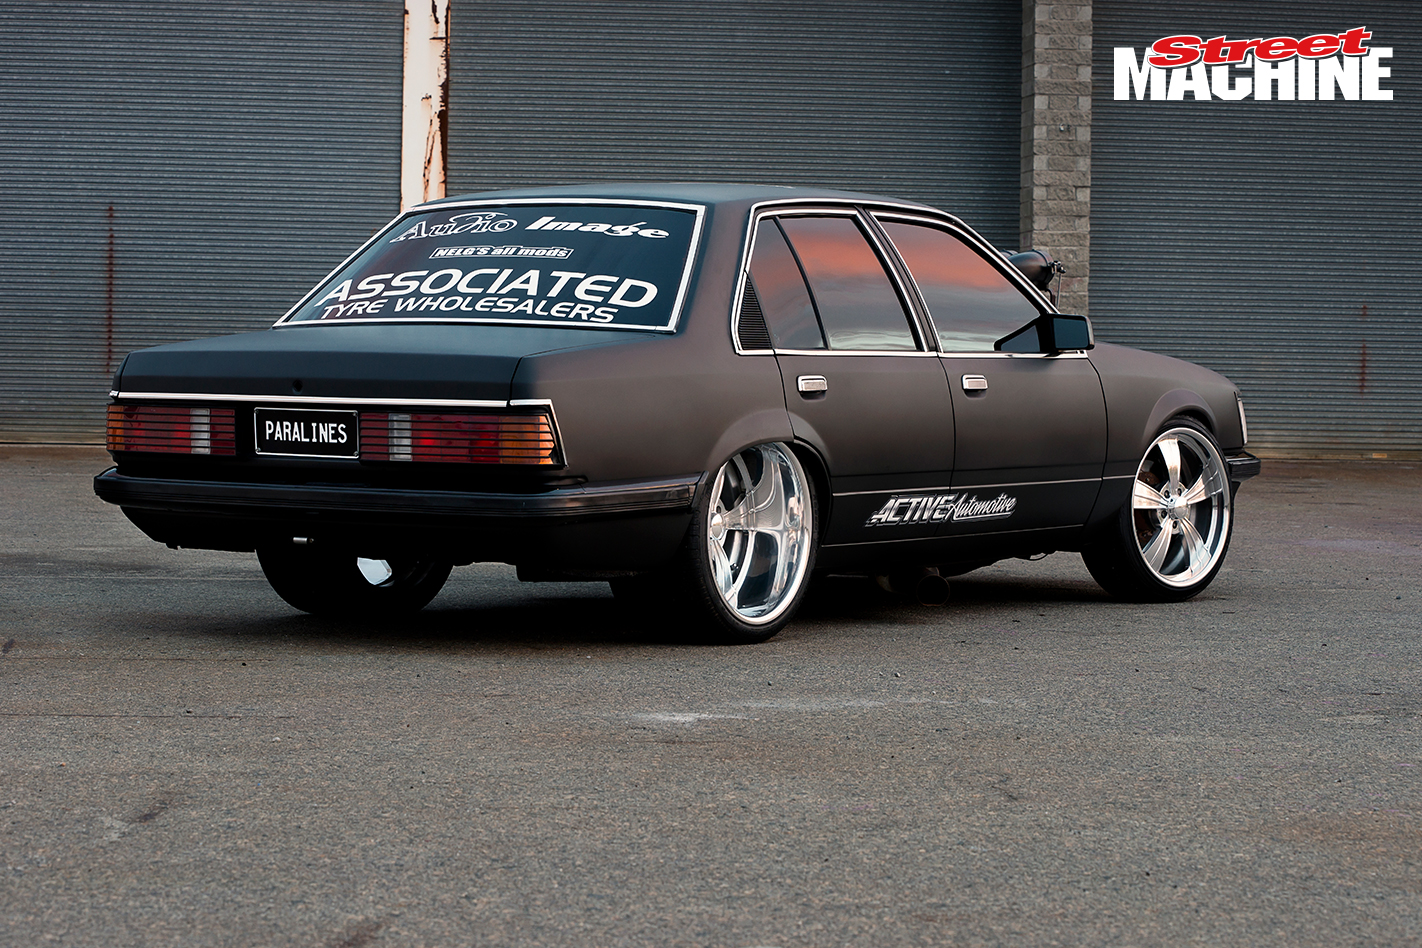 VH Commodore Burnout PARALINES 4 Nw